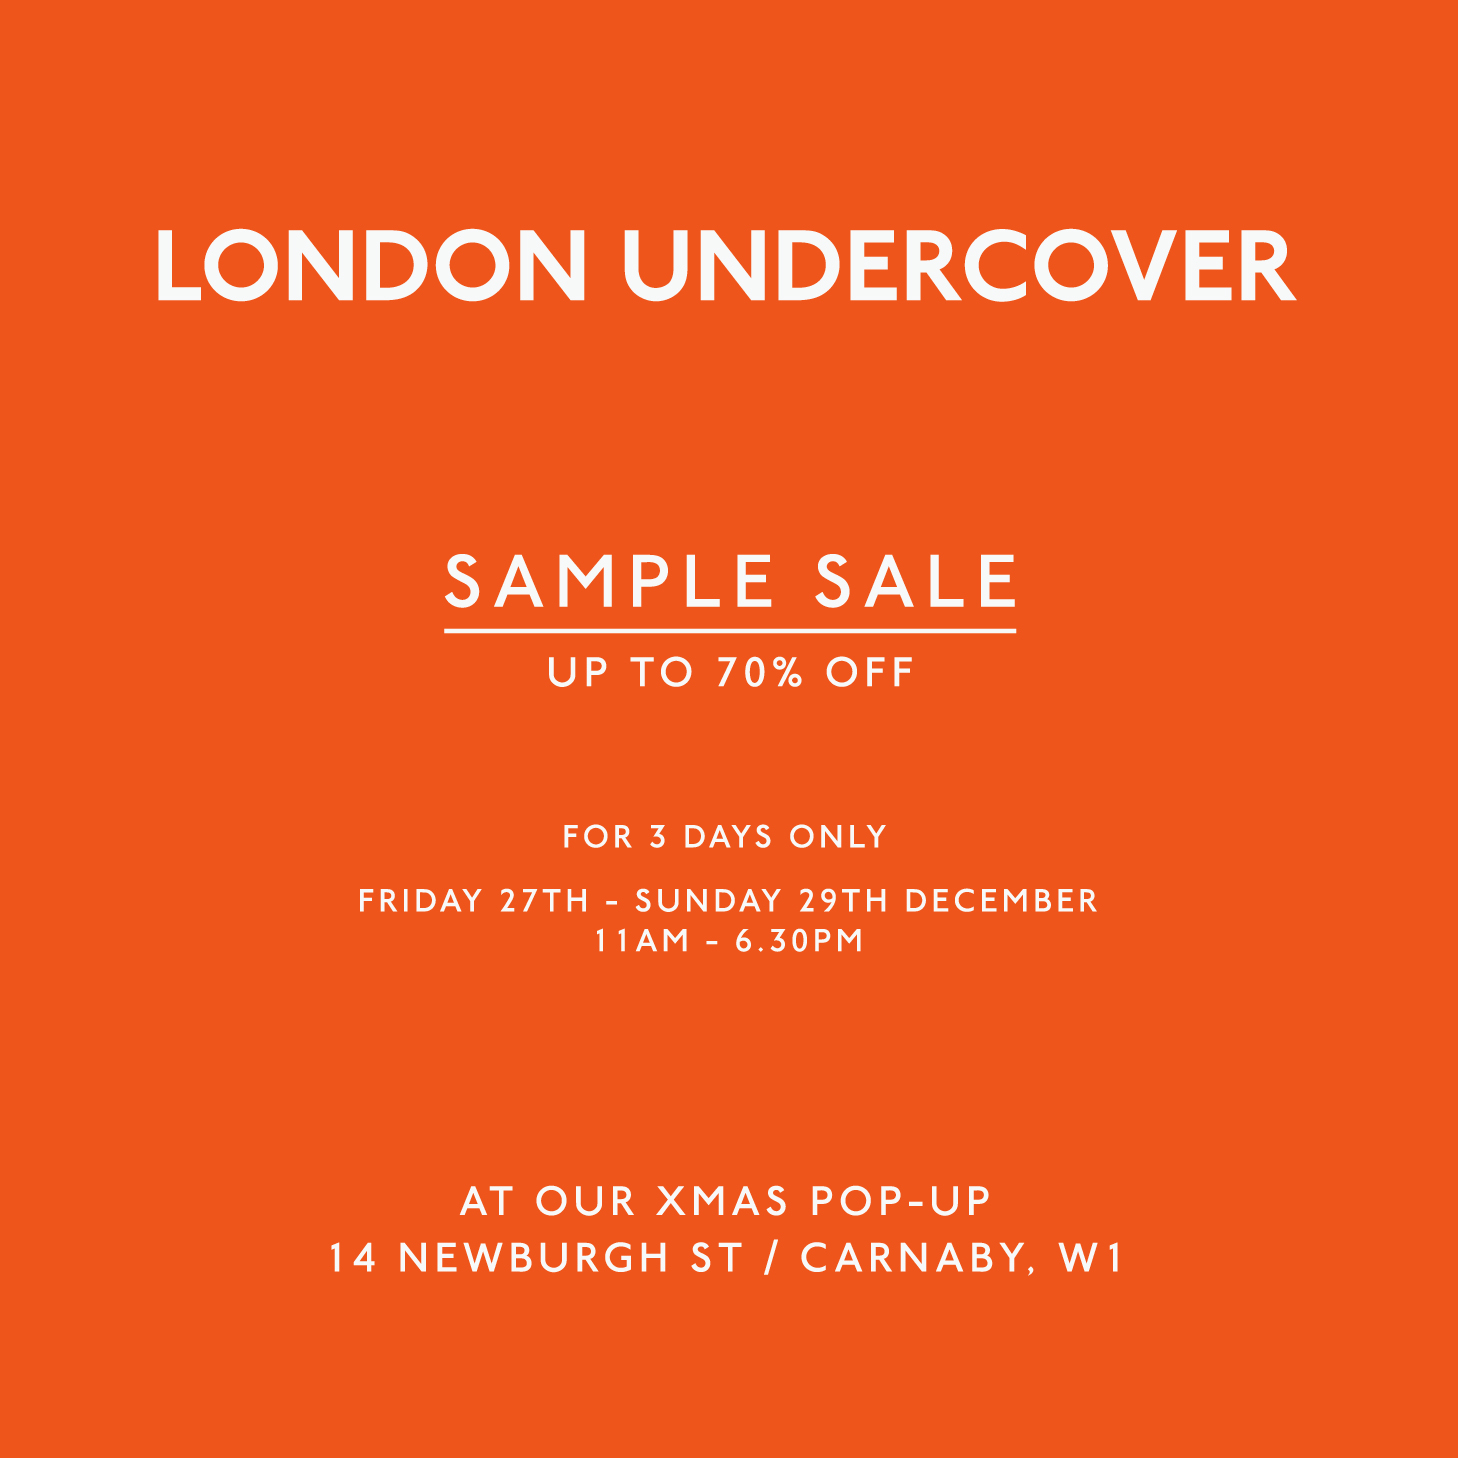 LONDON UNDERCOVER SAMPLE-SALE